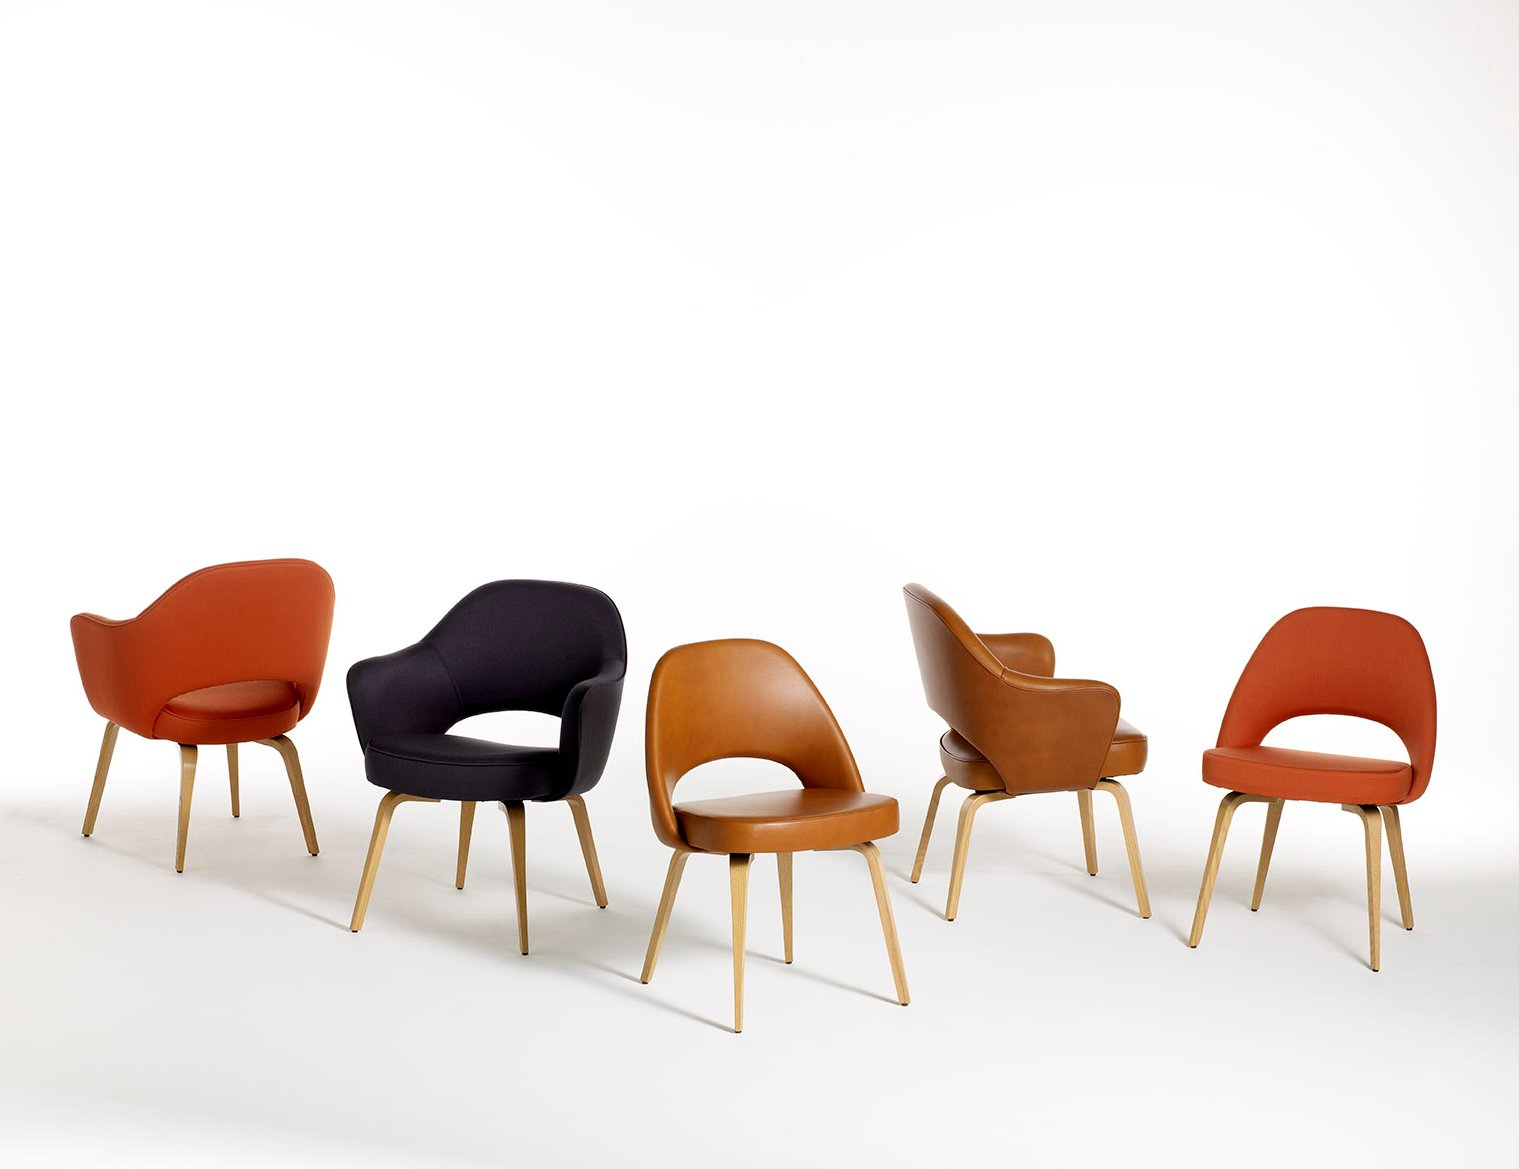 ... Saarinen Executive chairs  Saarinen Executive Armchair Armless Leg  Type Wood ...